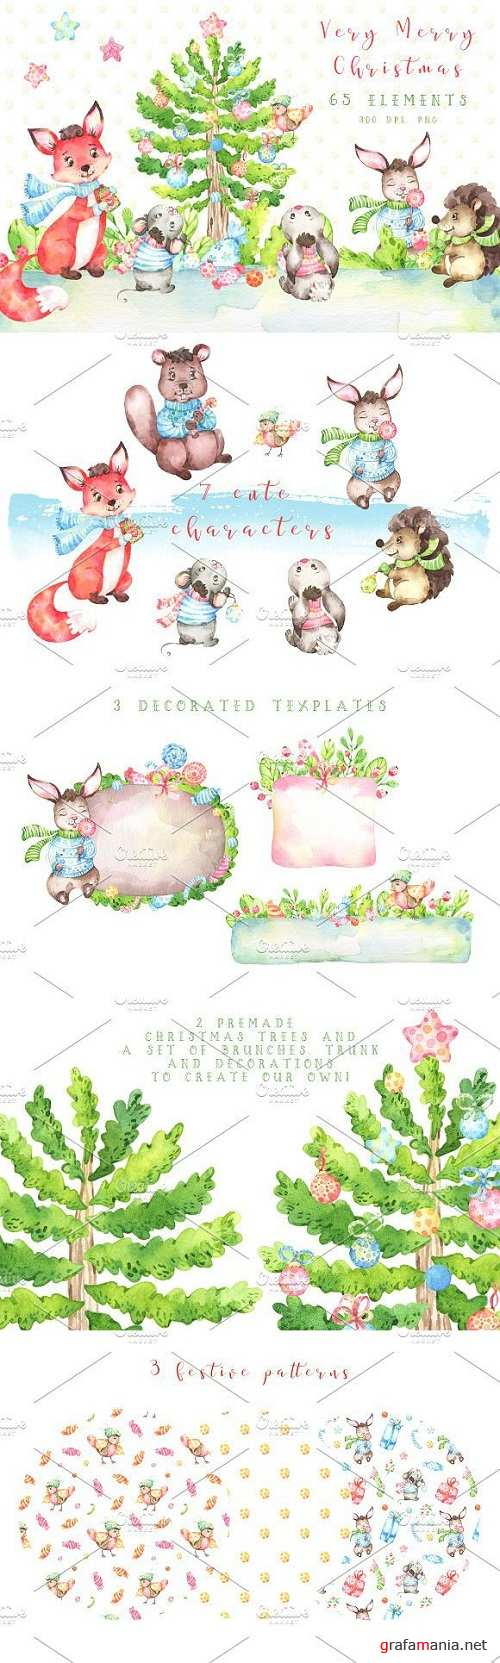 Very Merry Christmas Watercolor set 2095525